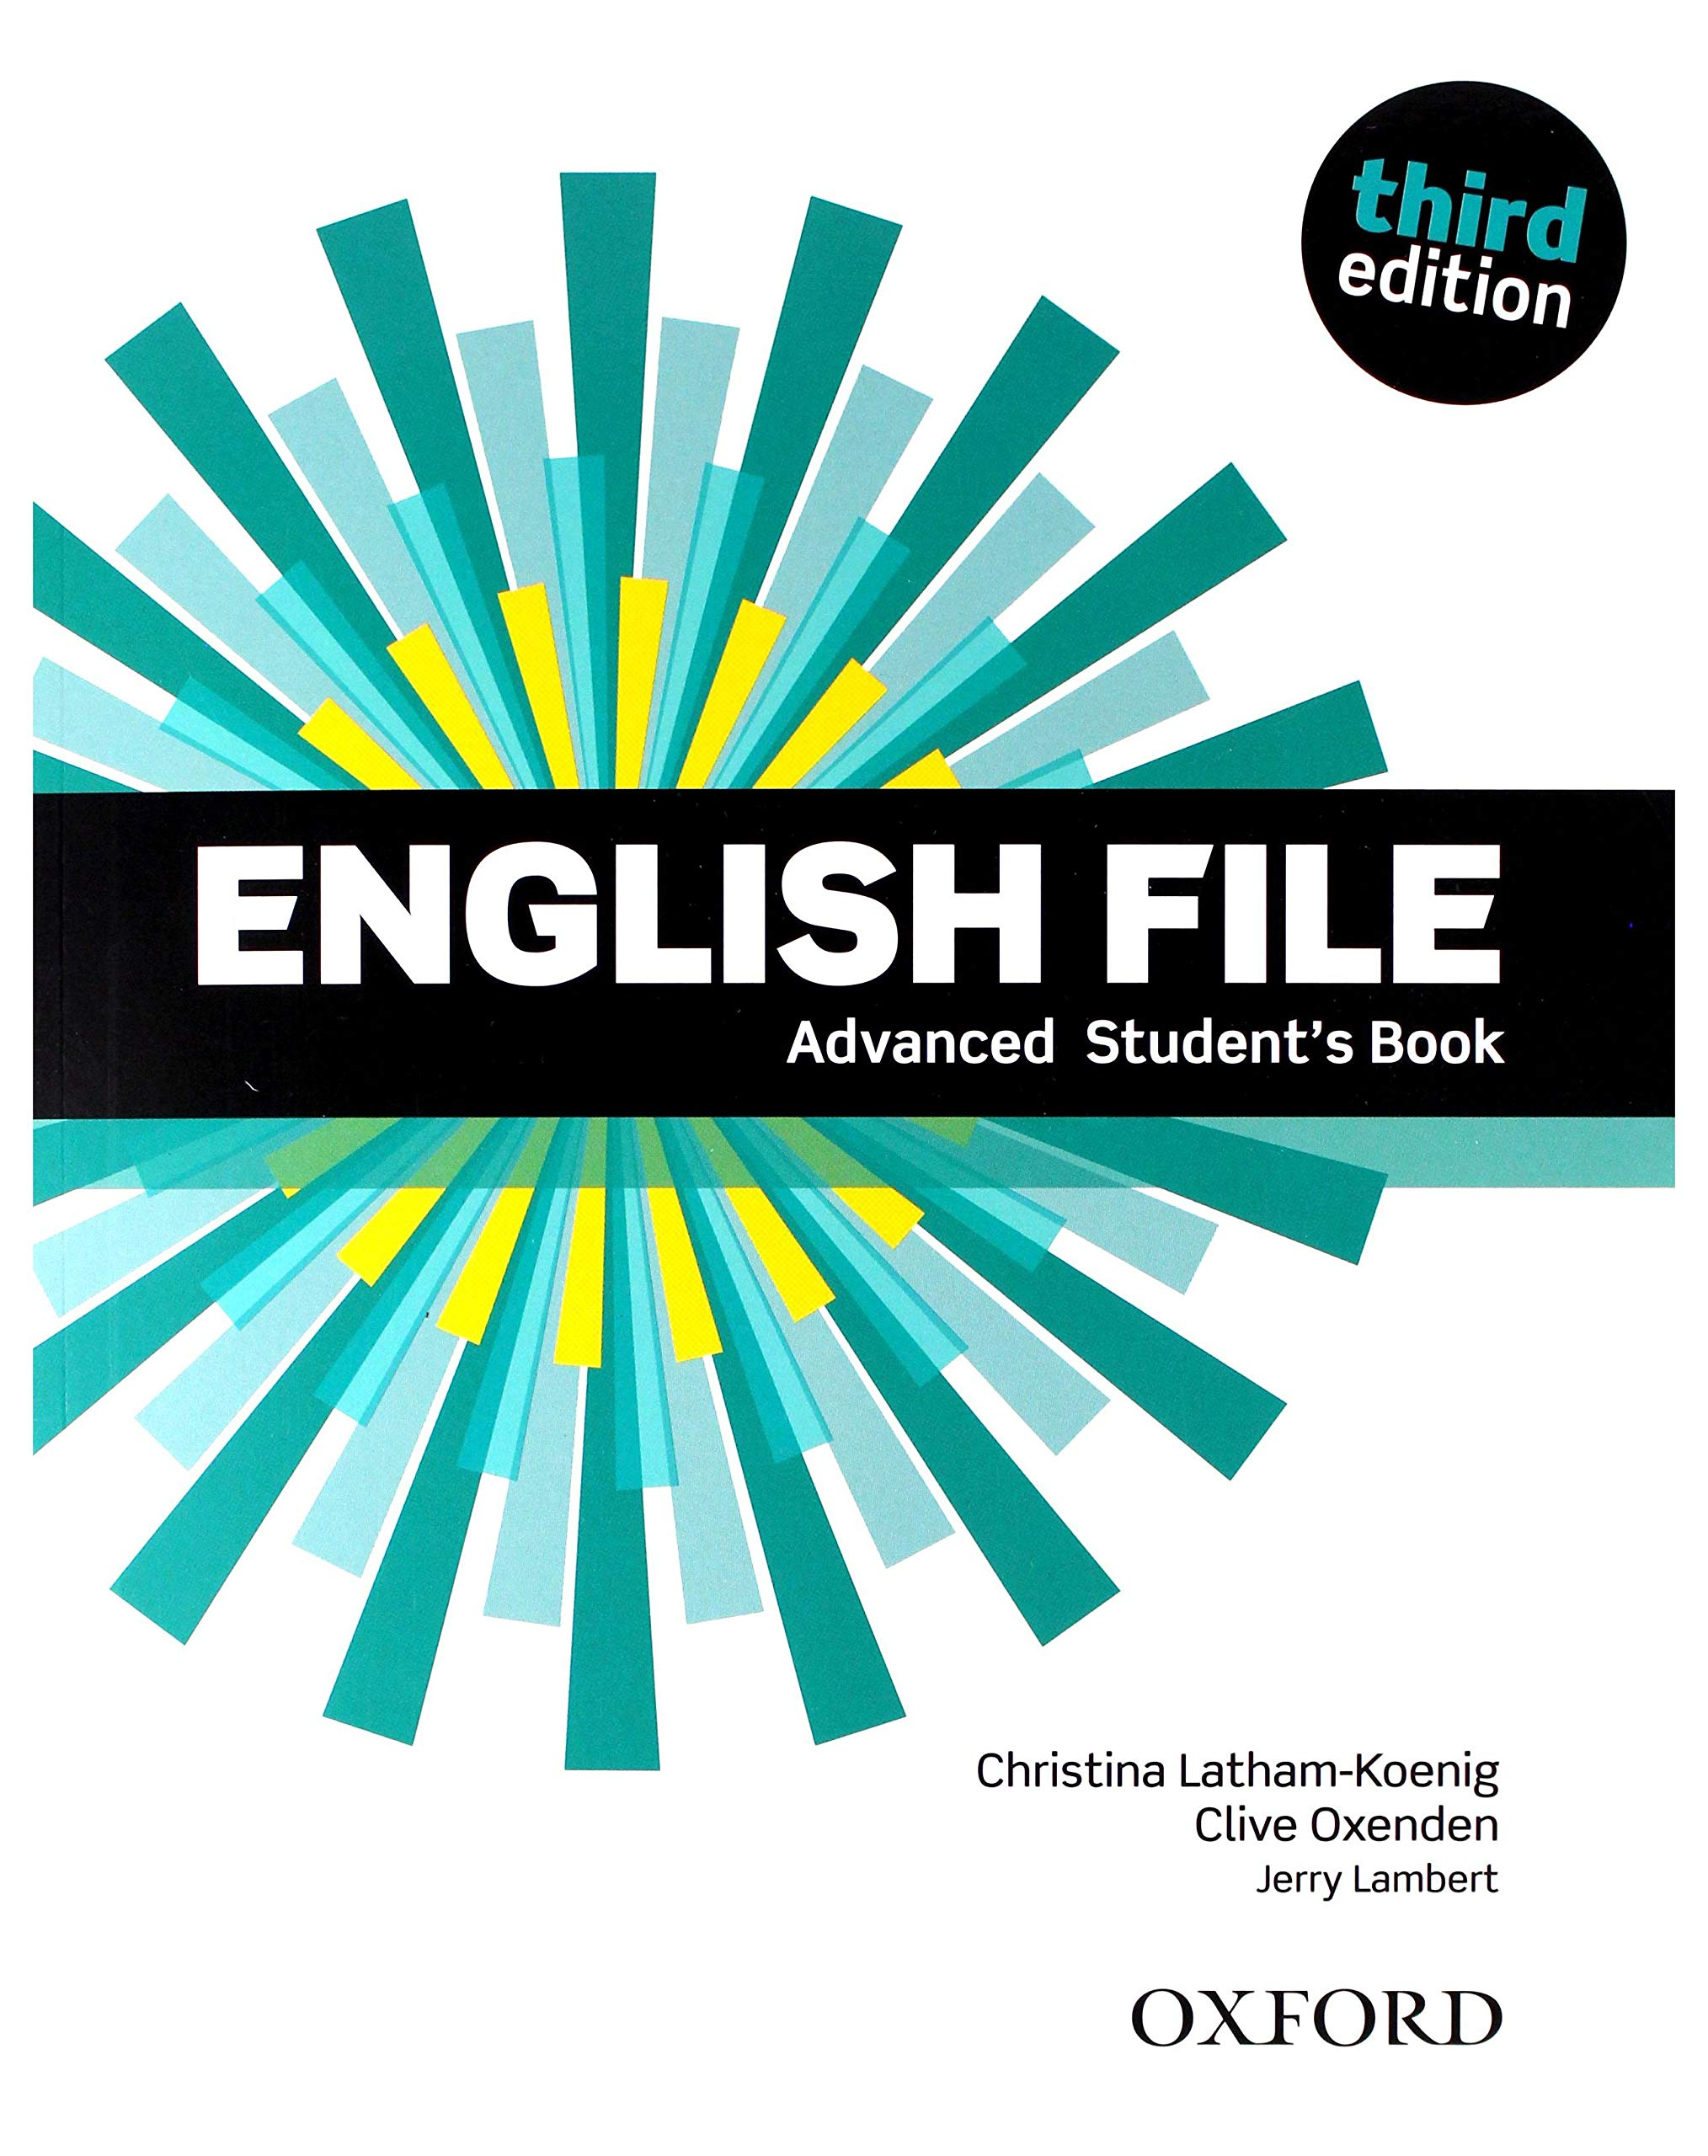 ENGLISH FILE ADVANCED 3rd ED Student's Book